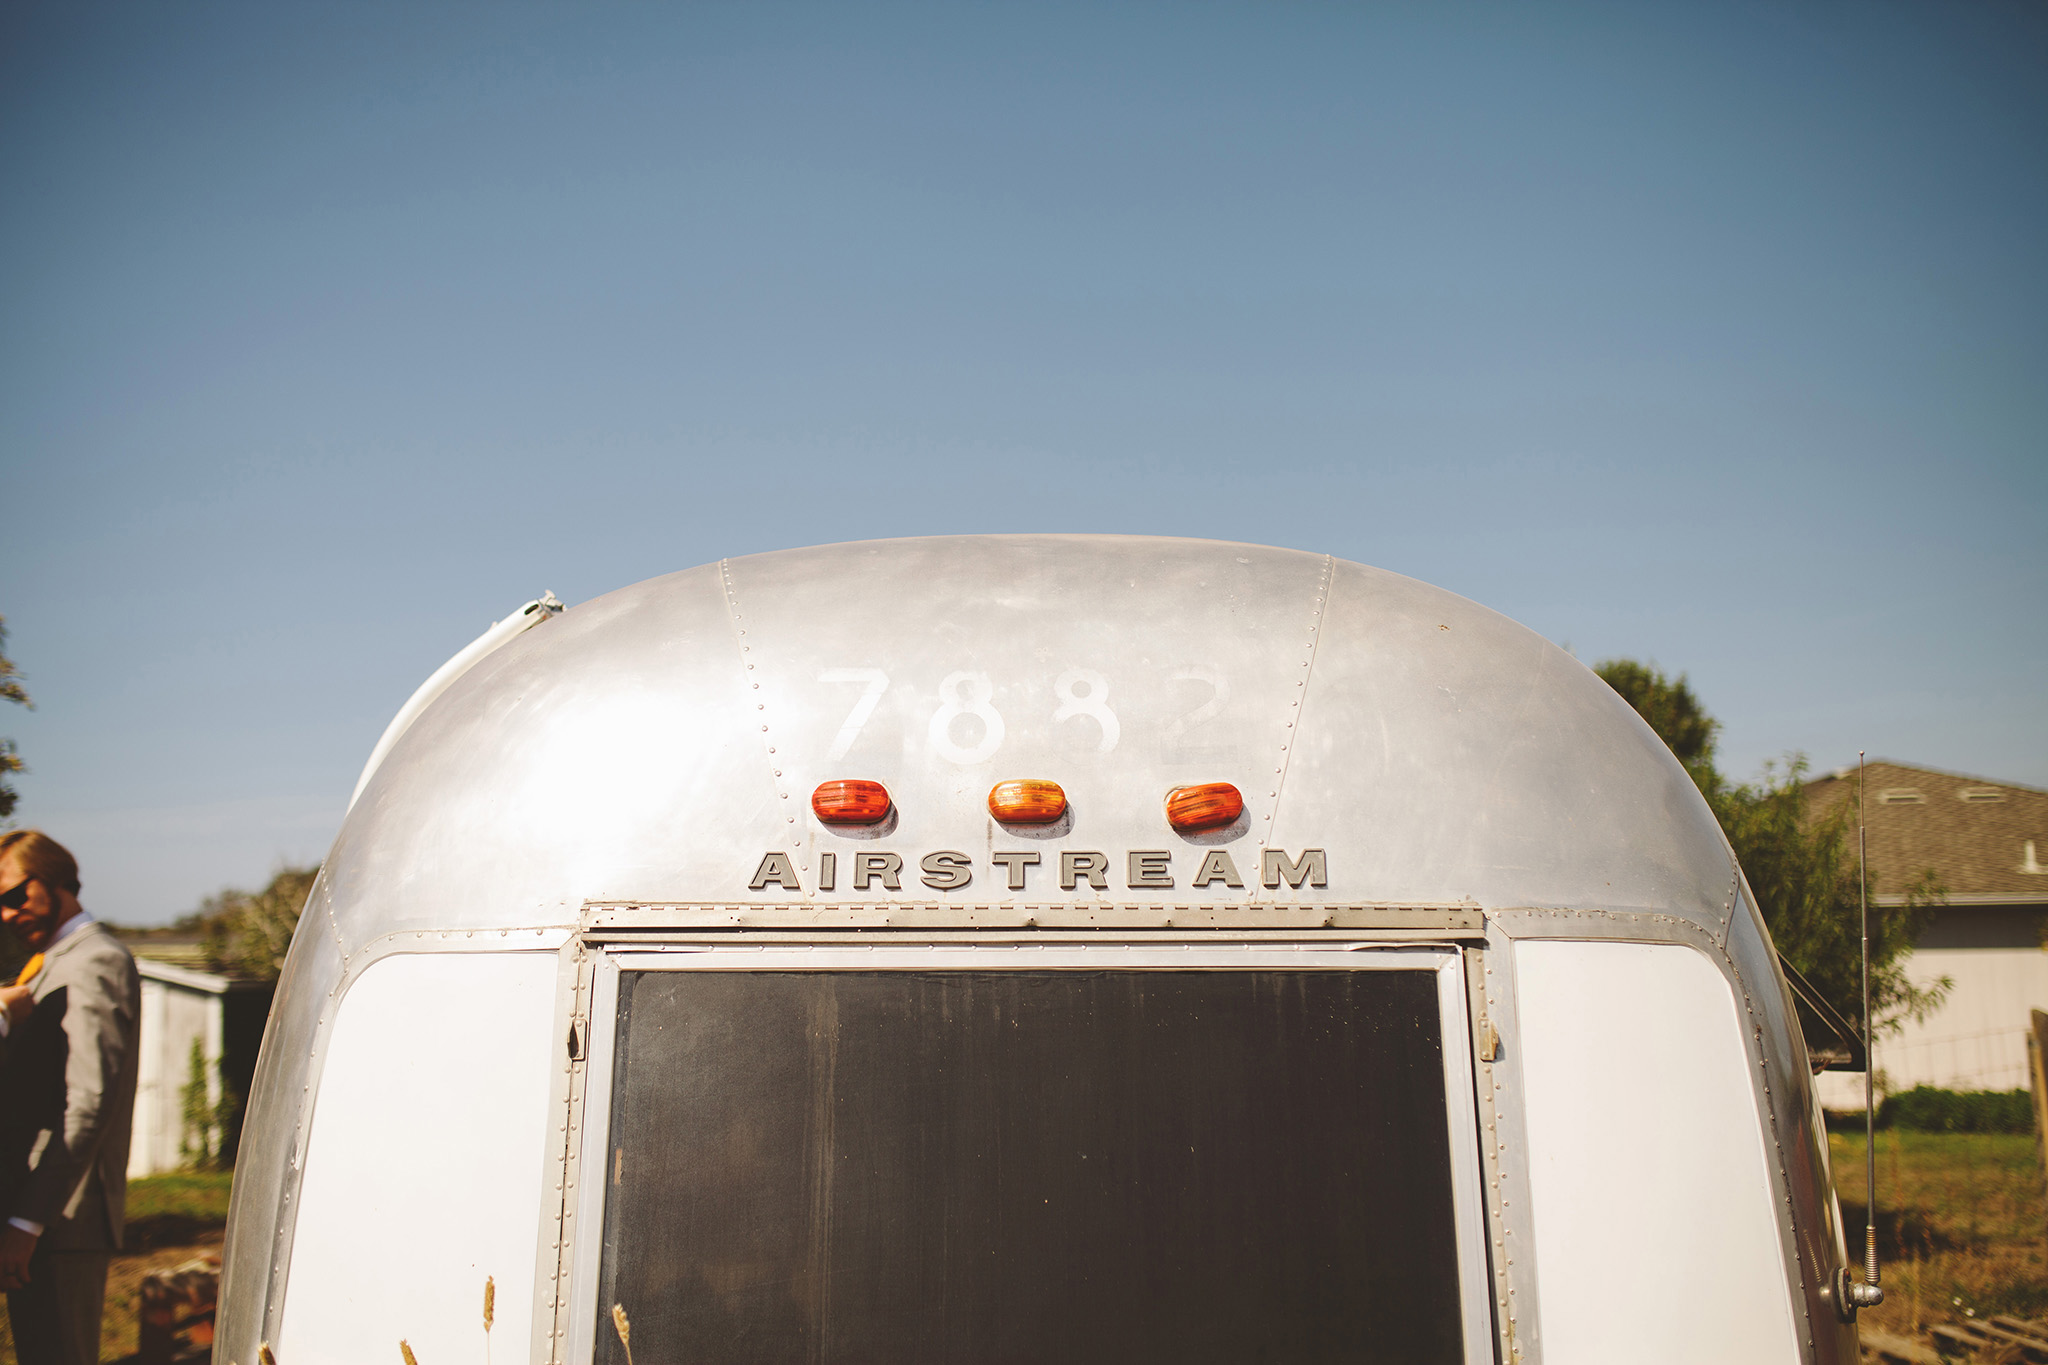 Vintage airstream wedding venue in northern California wedding pictures